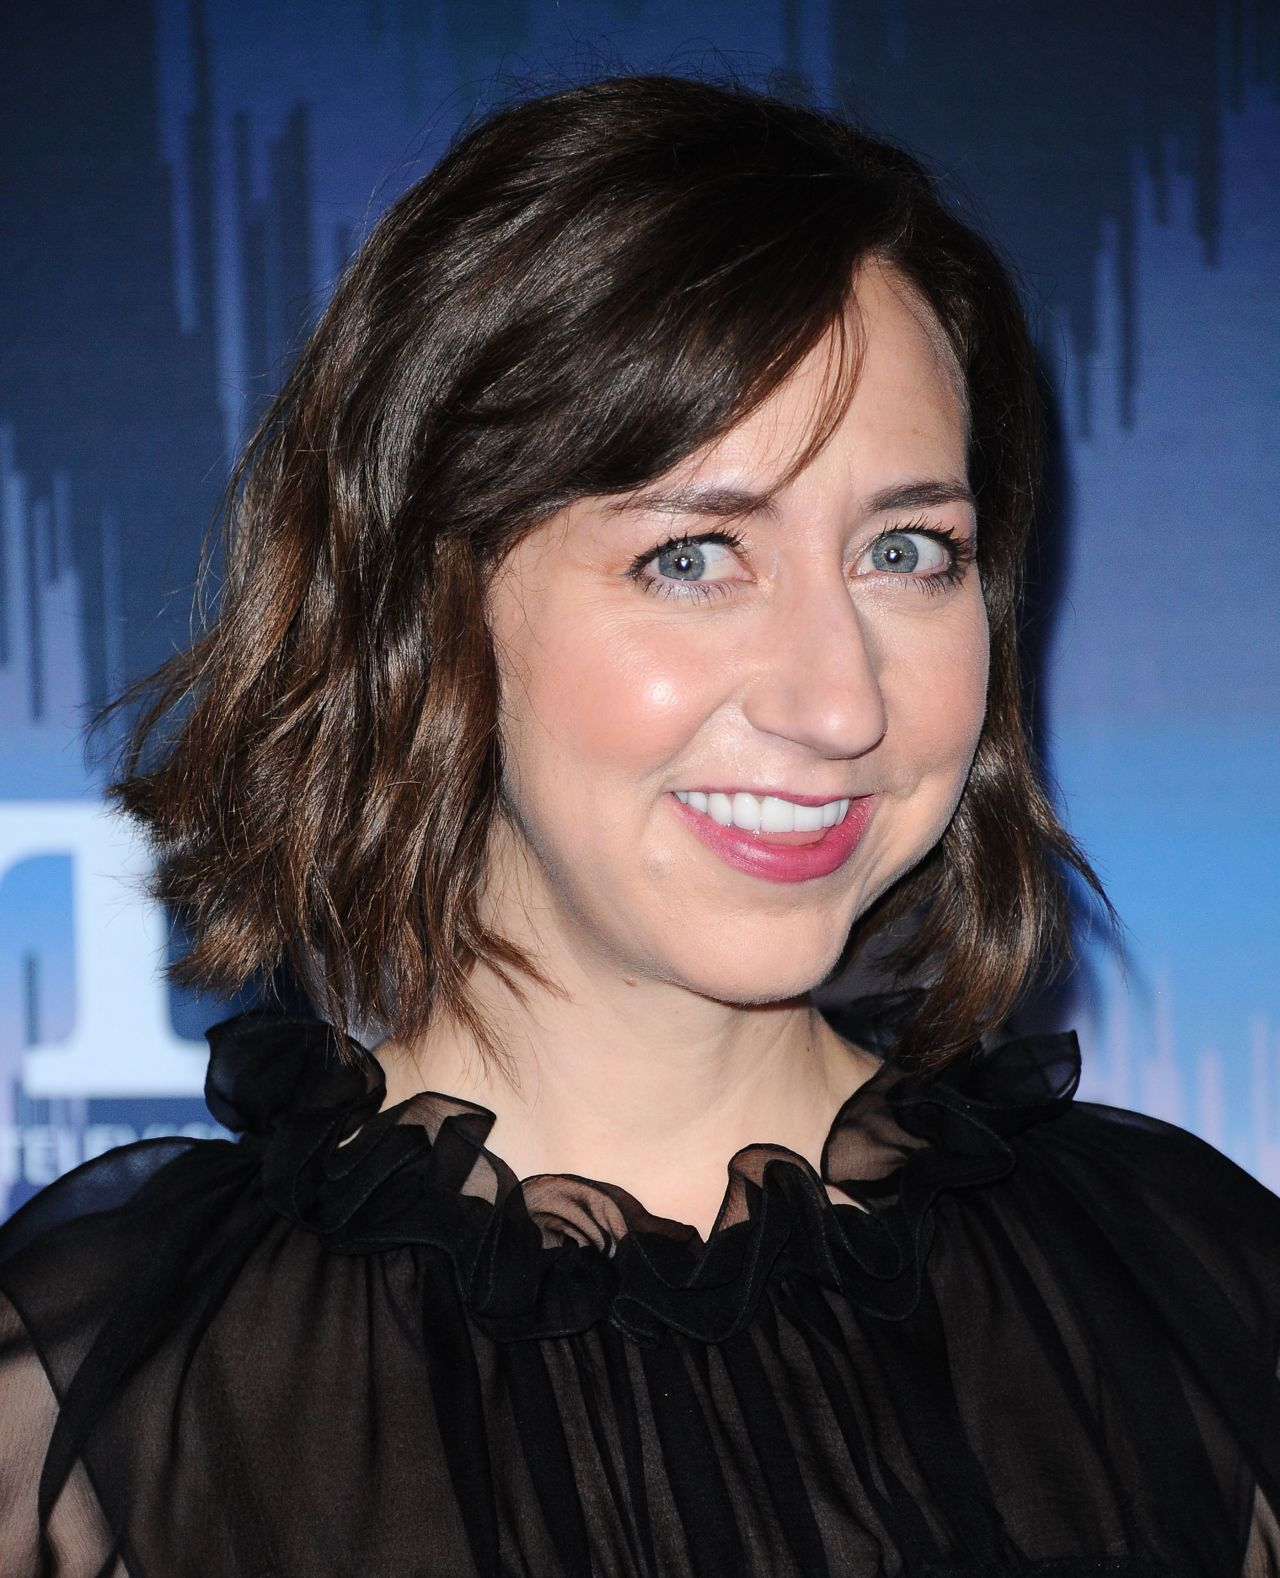 Kristen Schaal nudes (38 foto and video), Topless, Hot, Twitter, legs 2019